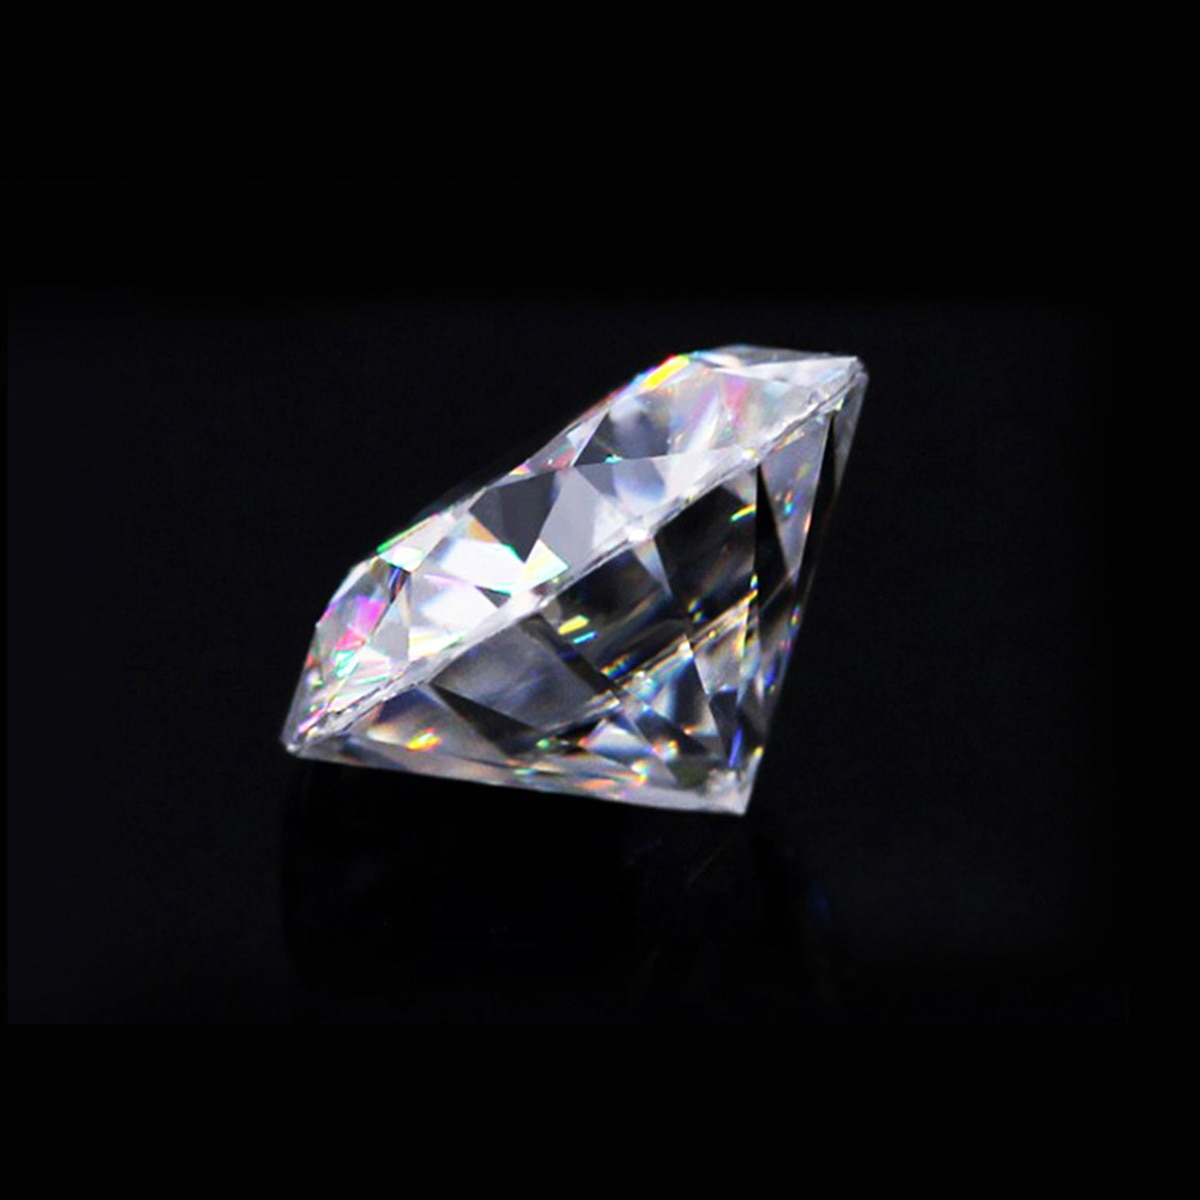 100% Real Loose Gemstones Moissanite Stone G Color 0.2ct To 5ct Lab Grown Diamond Round Shape Undefined For Jewelry Diamond Ring